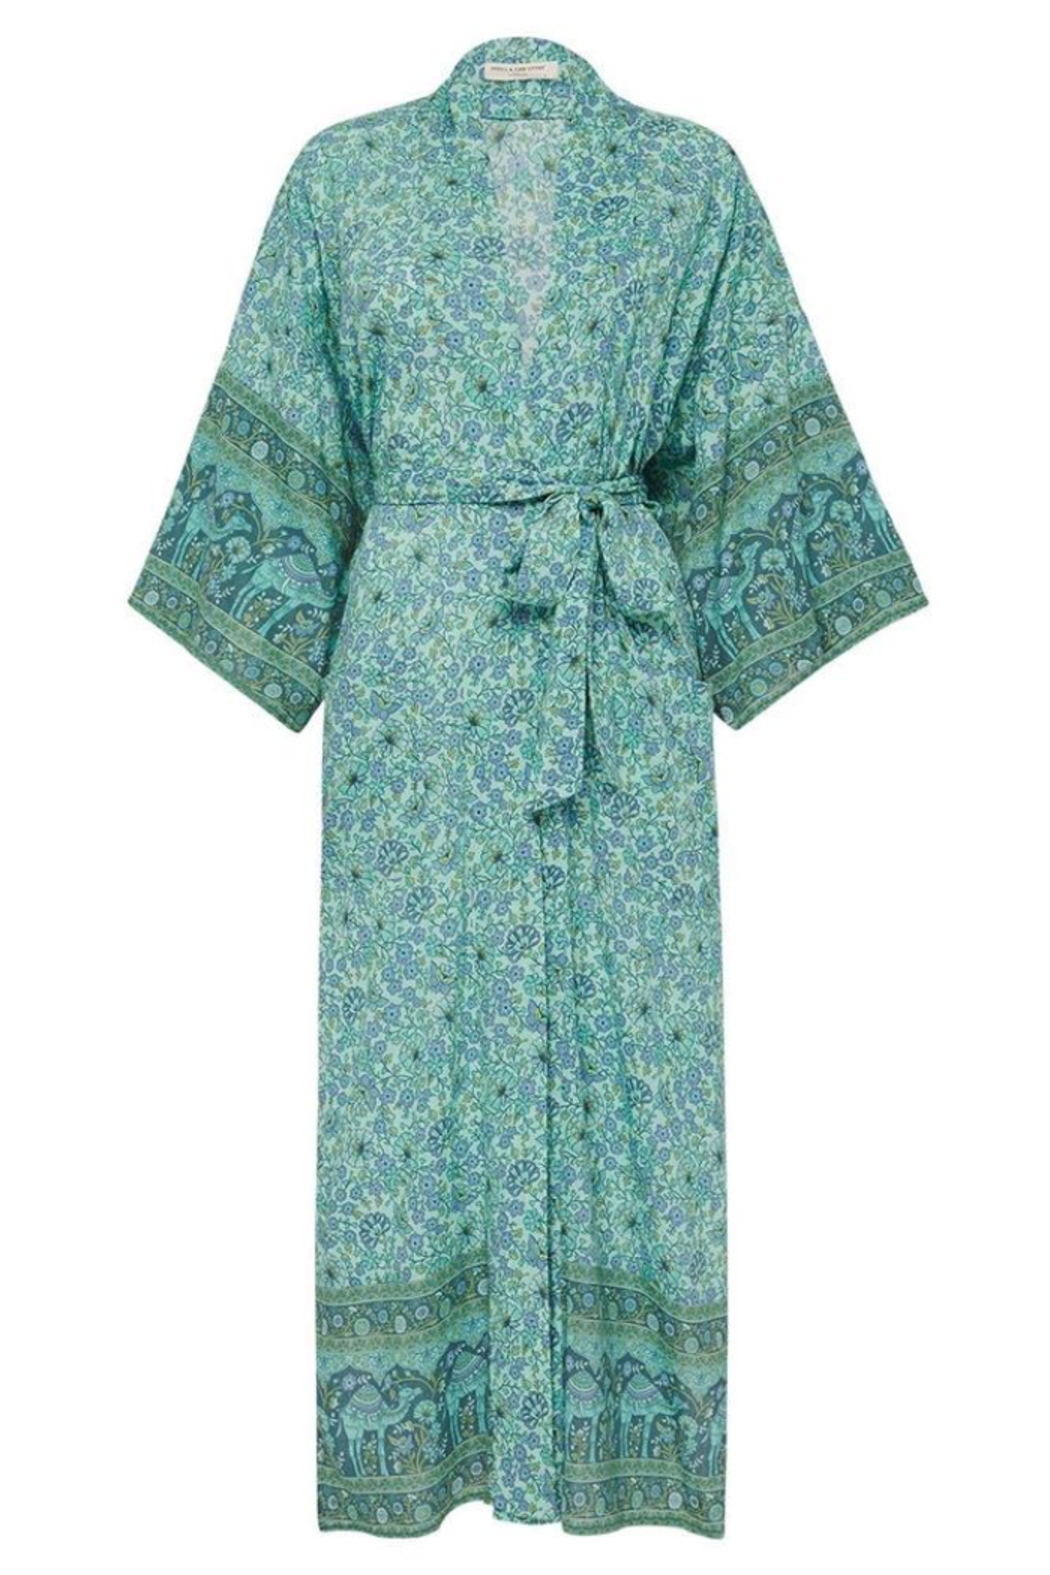 Spell & the Gypsy Collective Sundown Maxi Robe - Back Cropped Image